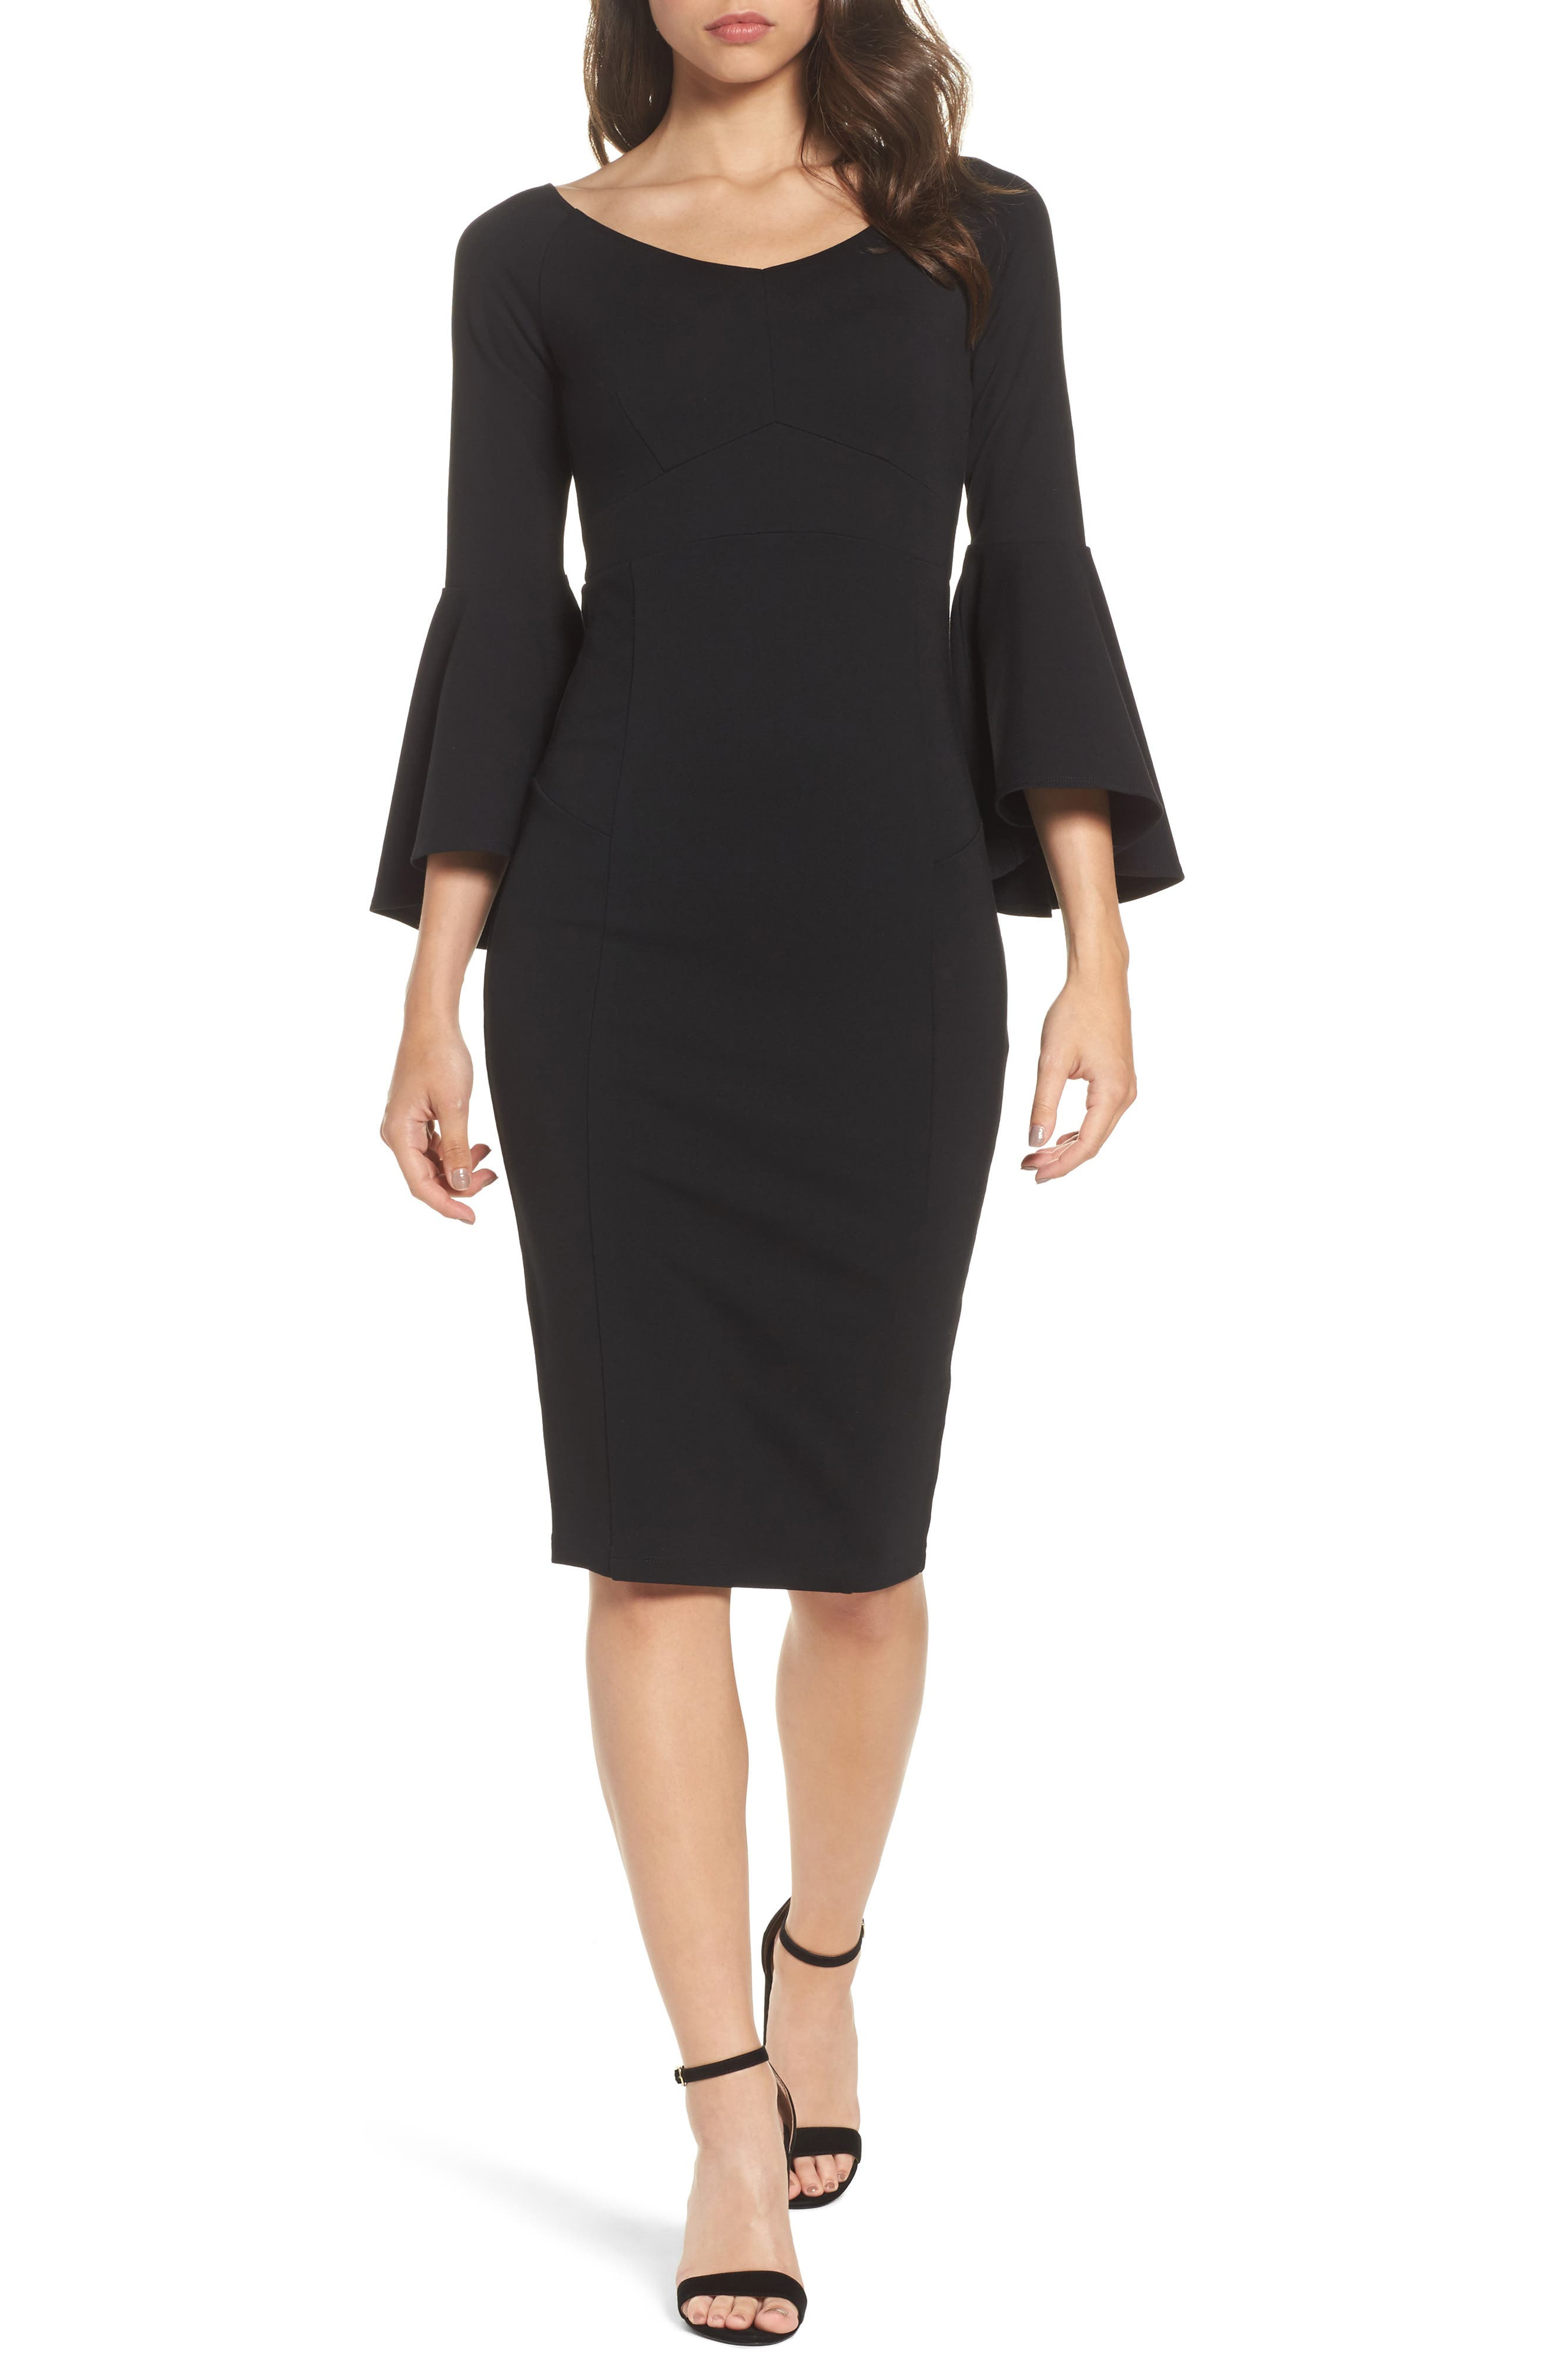 Alternate Image 1 Selected - Felicity & Coco Milly Bell Sleeve Midi Dress (Nordstrom Exclusive)